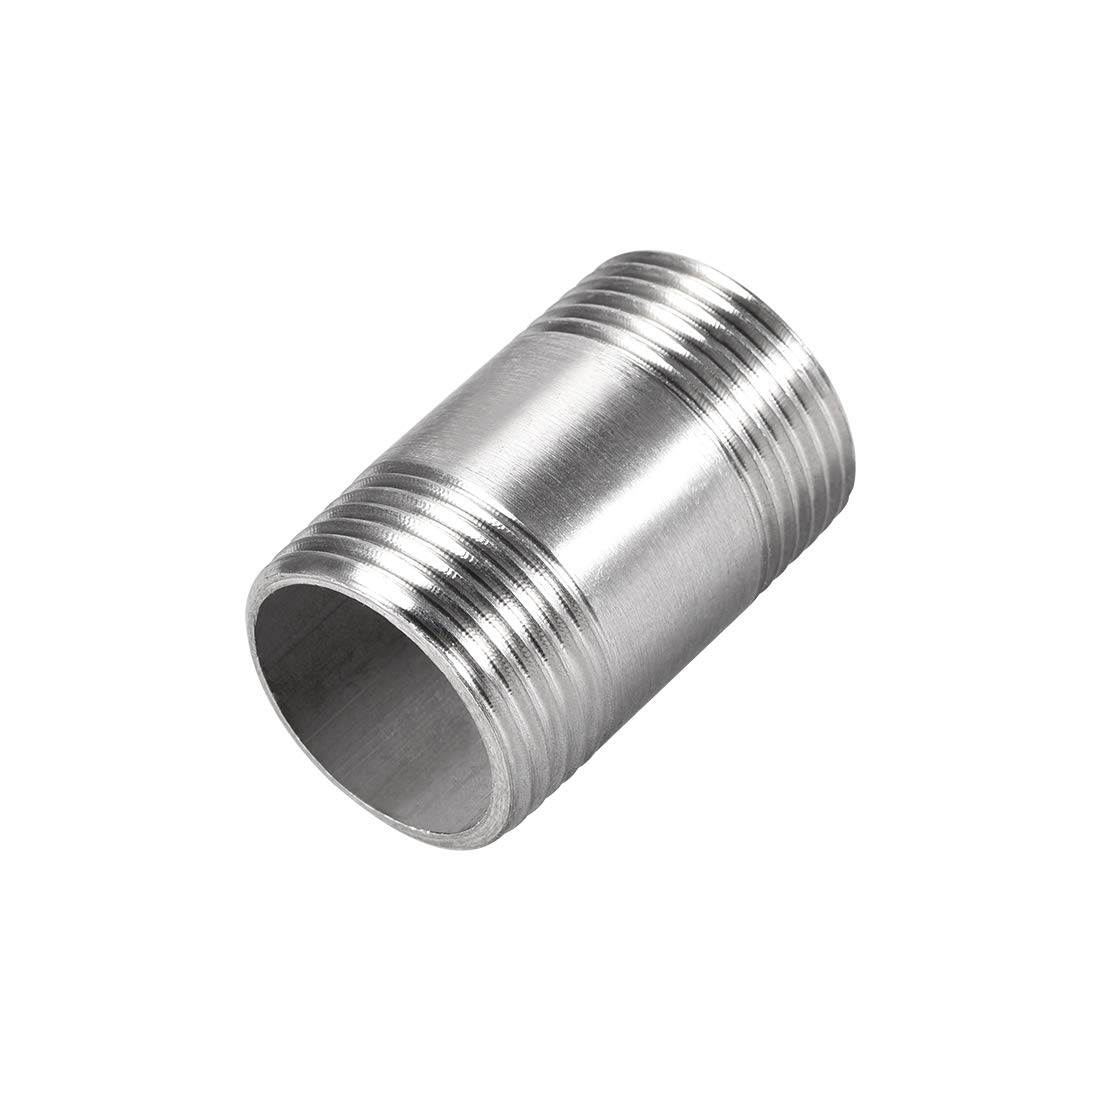 uxcell Stainless Steel 304 Cast Pipe Fittings Coupling Fitting 3/4 x 3/4 G Male